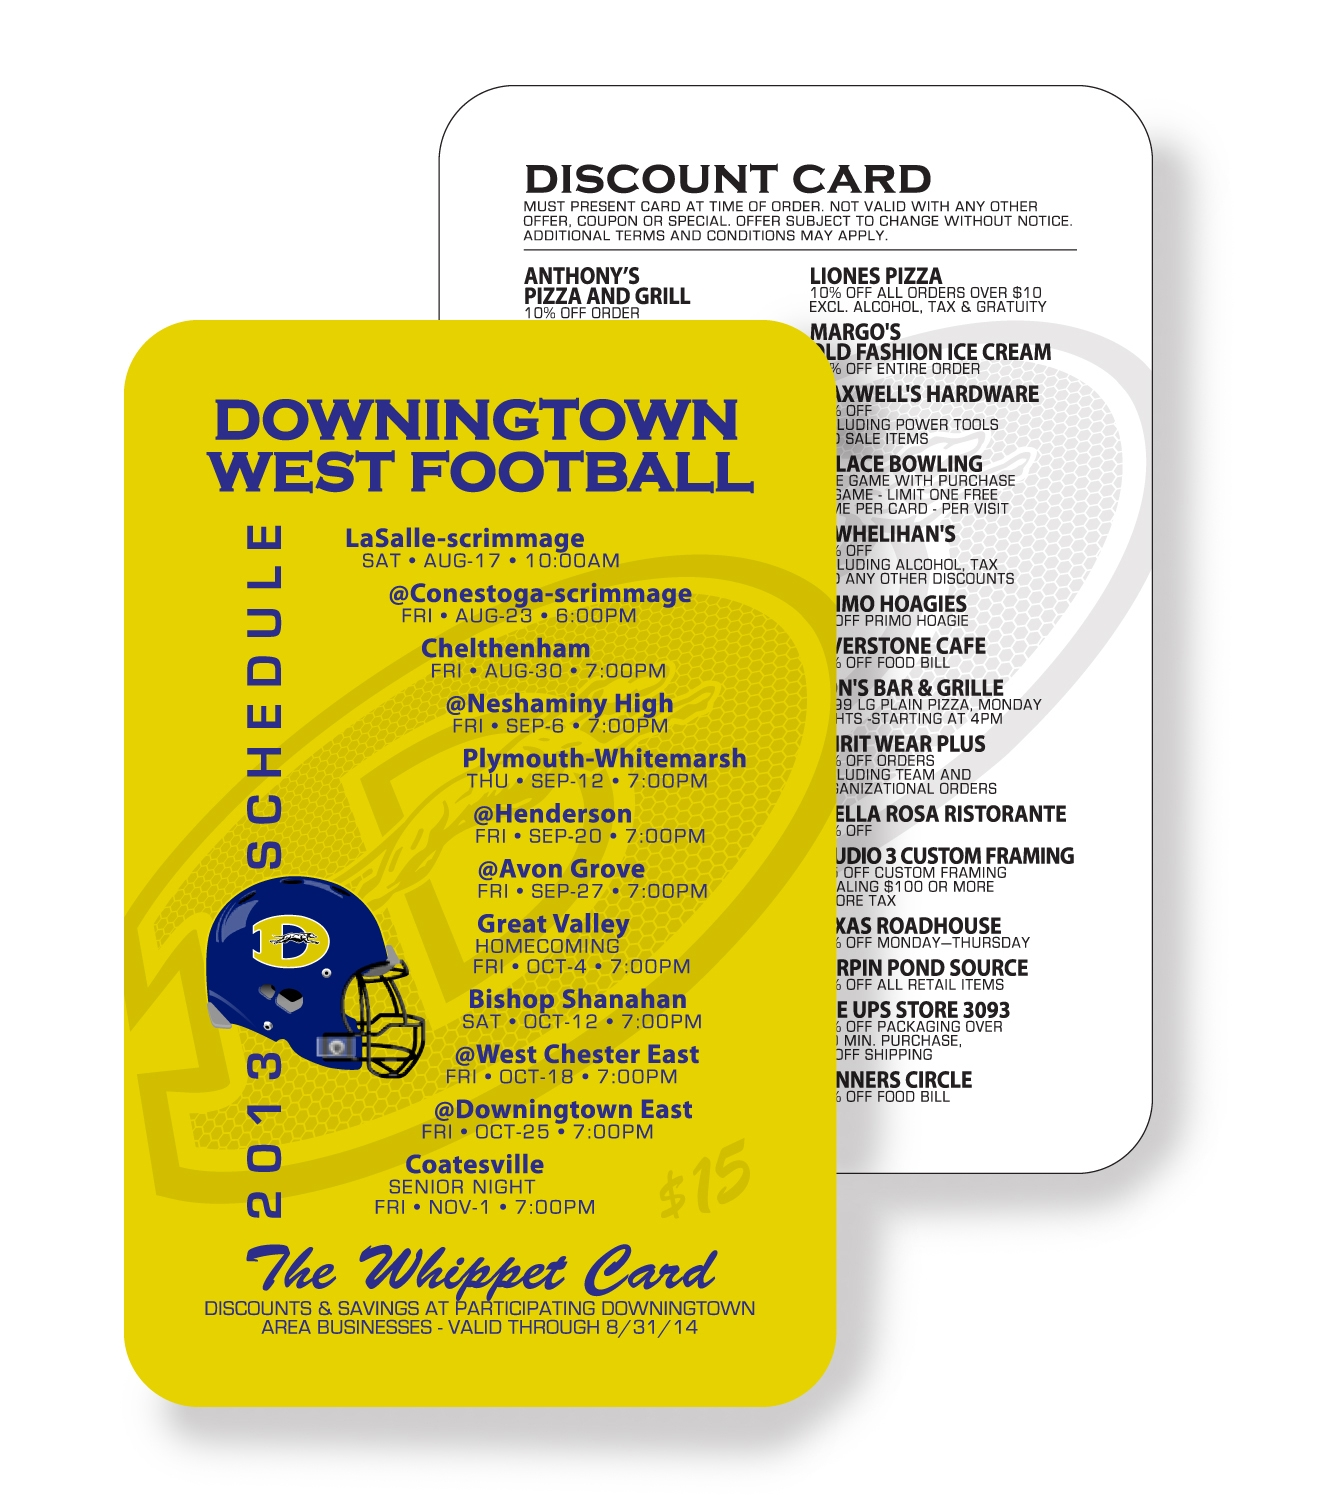 Whippet Discount Card